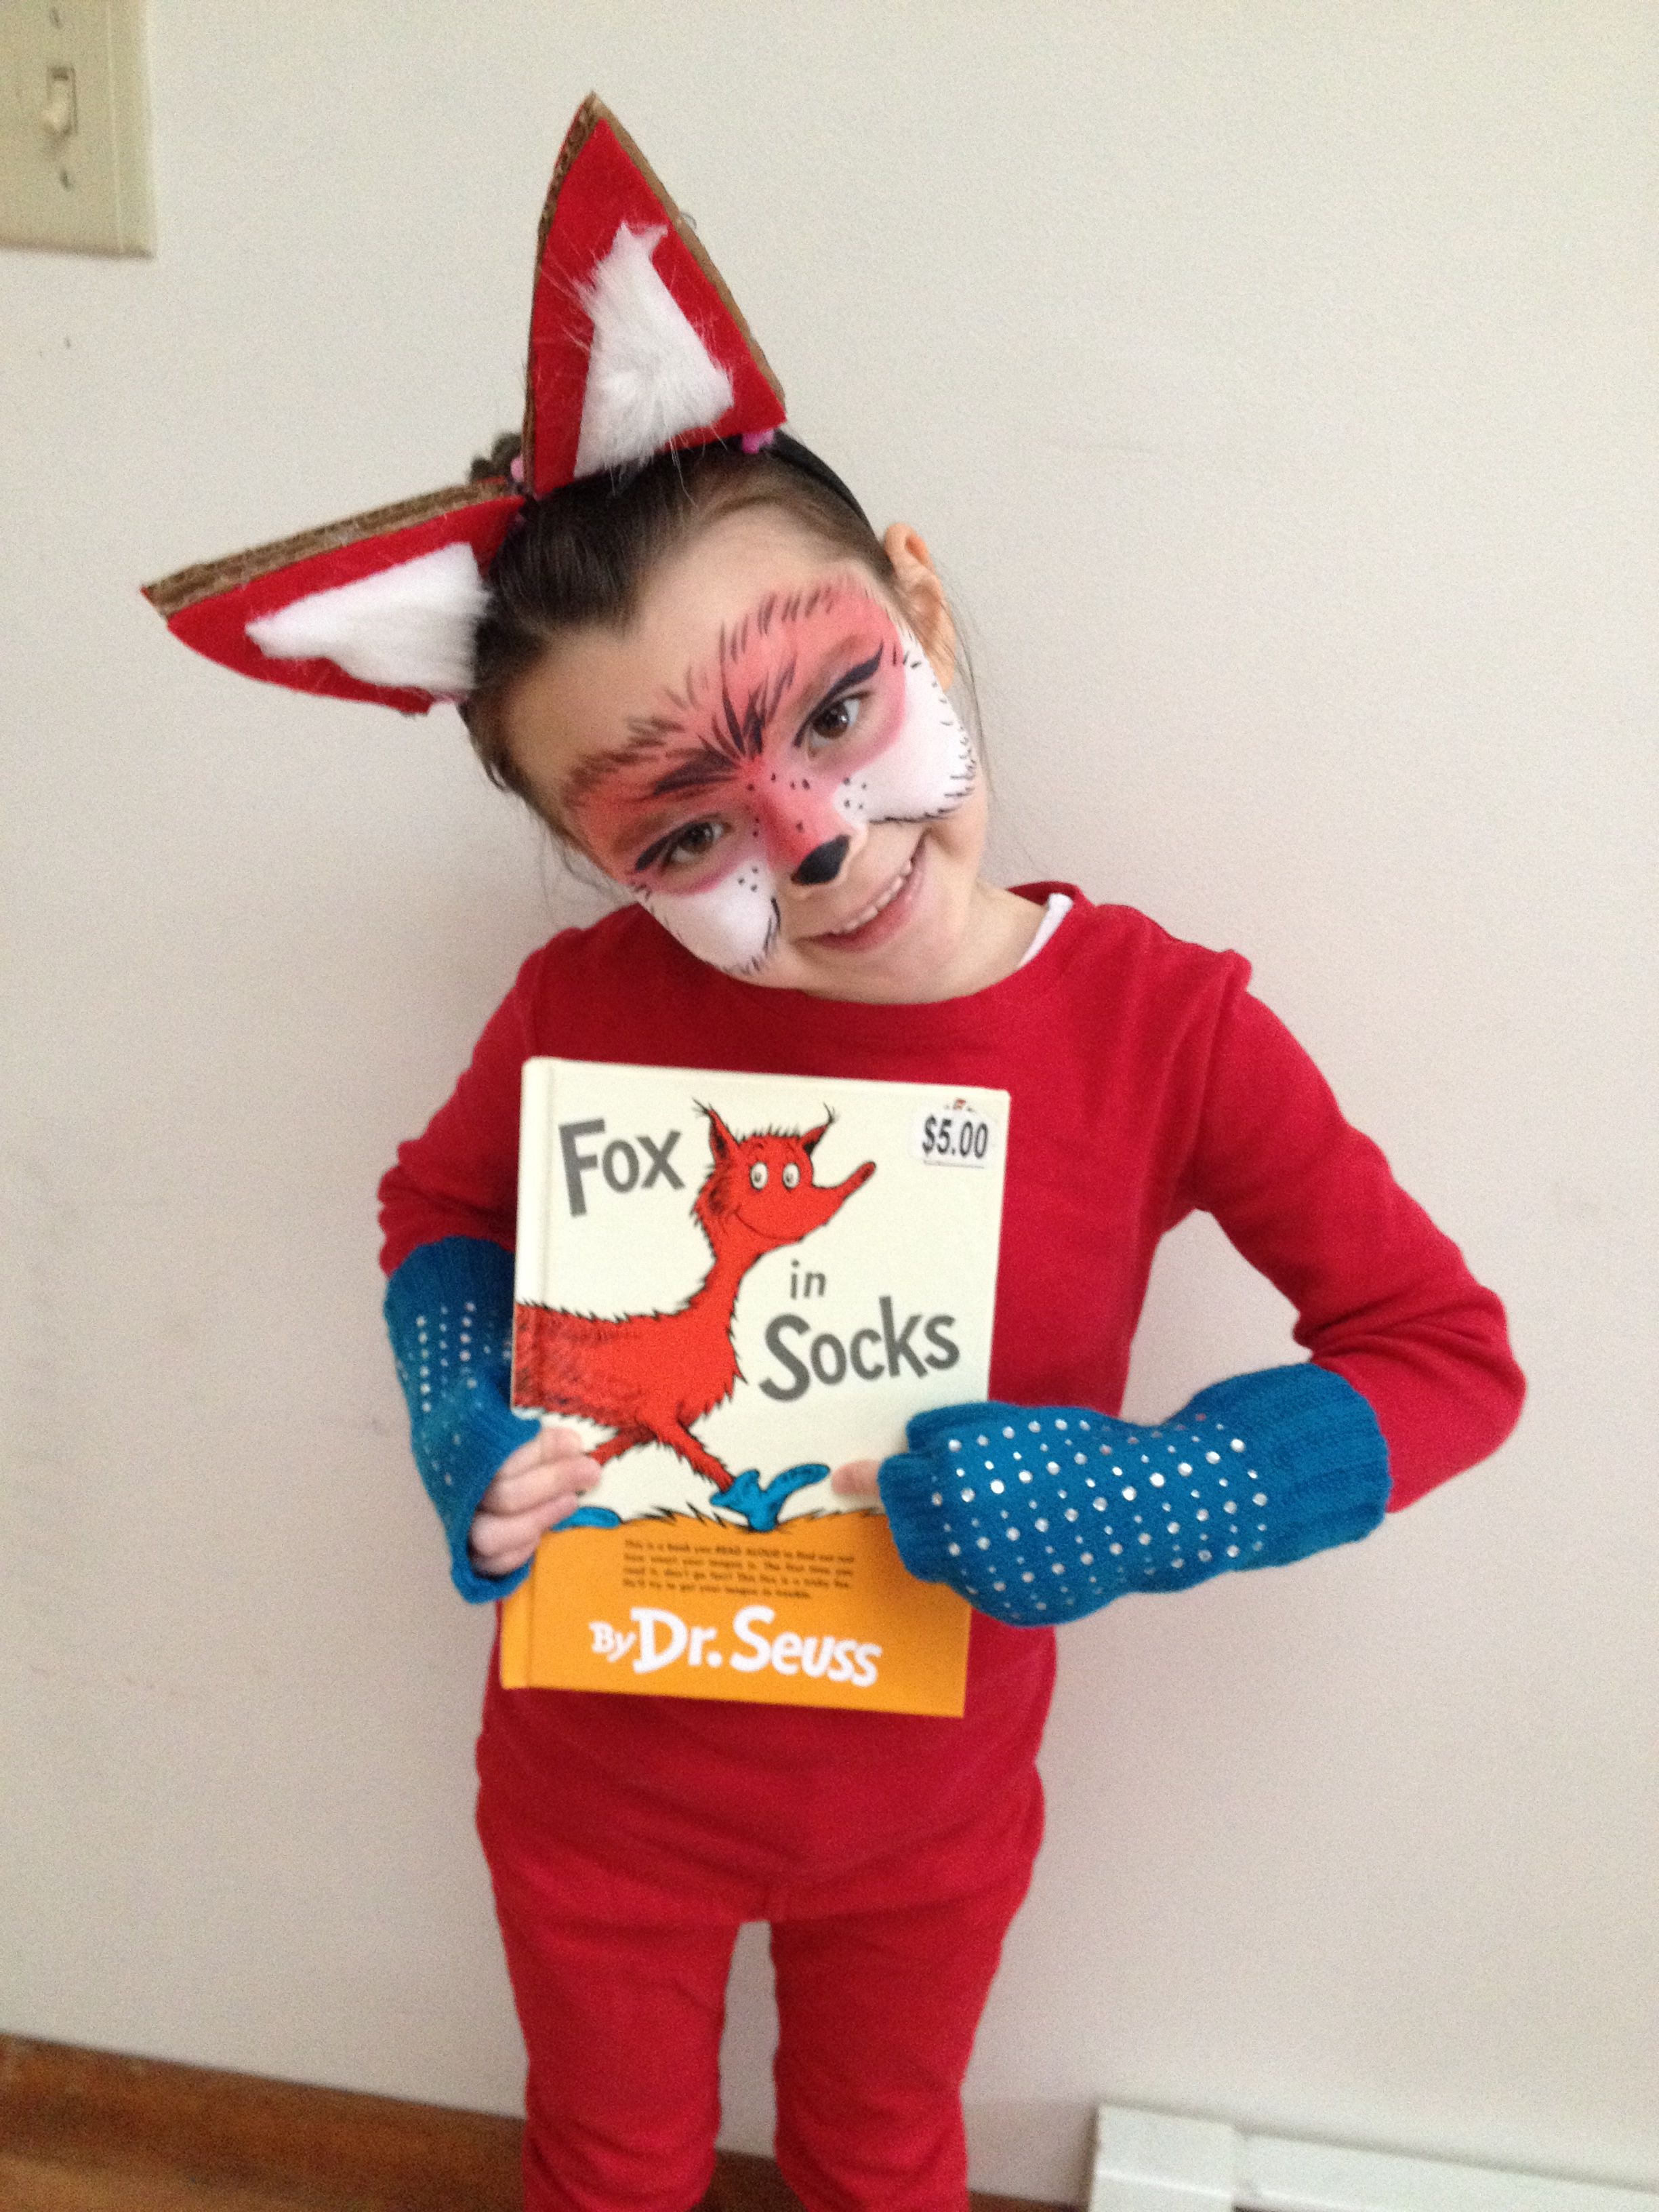 Dr suess dress up Fox in Socks for sophie on dr. Seuss day  sc 1 st  Pinterest & Dr suess dress up Fox in Socks for sophie on dr. Seuss day | beds ...